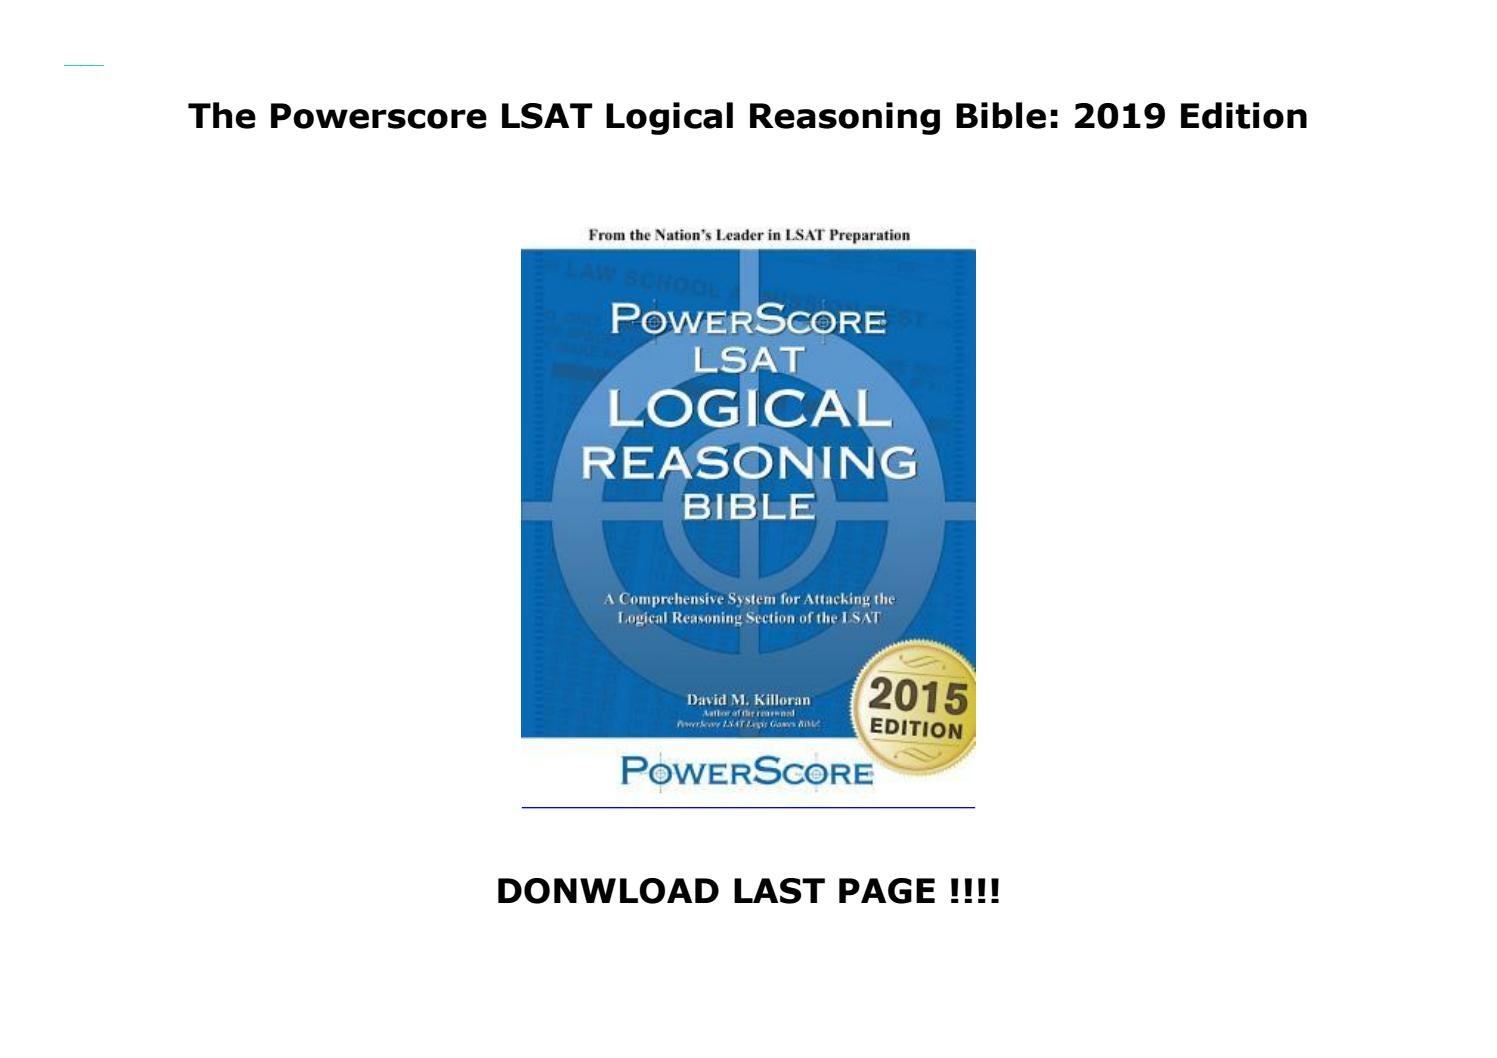 LSAT Logical Reasoning Bible A Comprehensive System for Attacking the Logical Reasoning Section of the LSAT